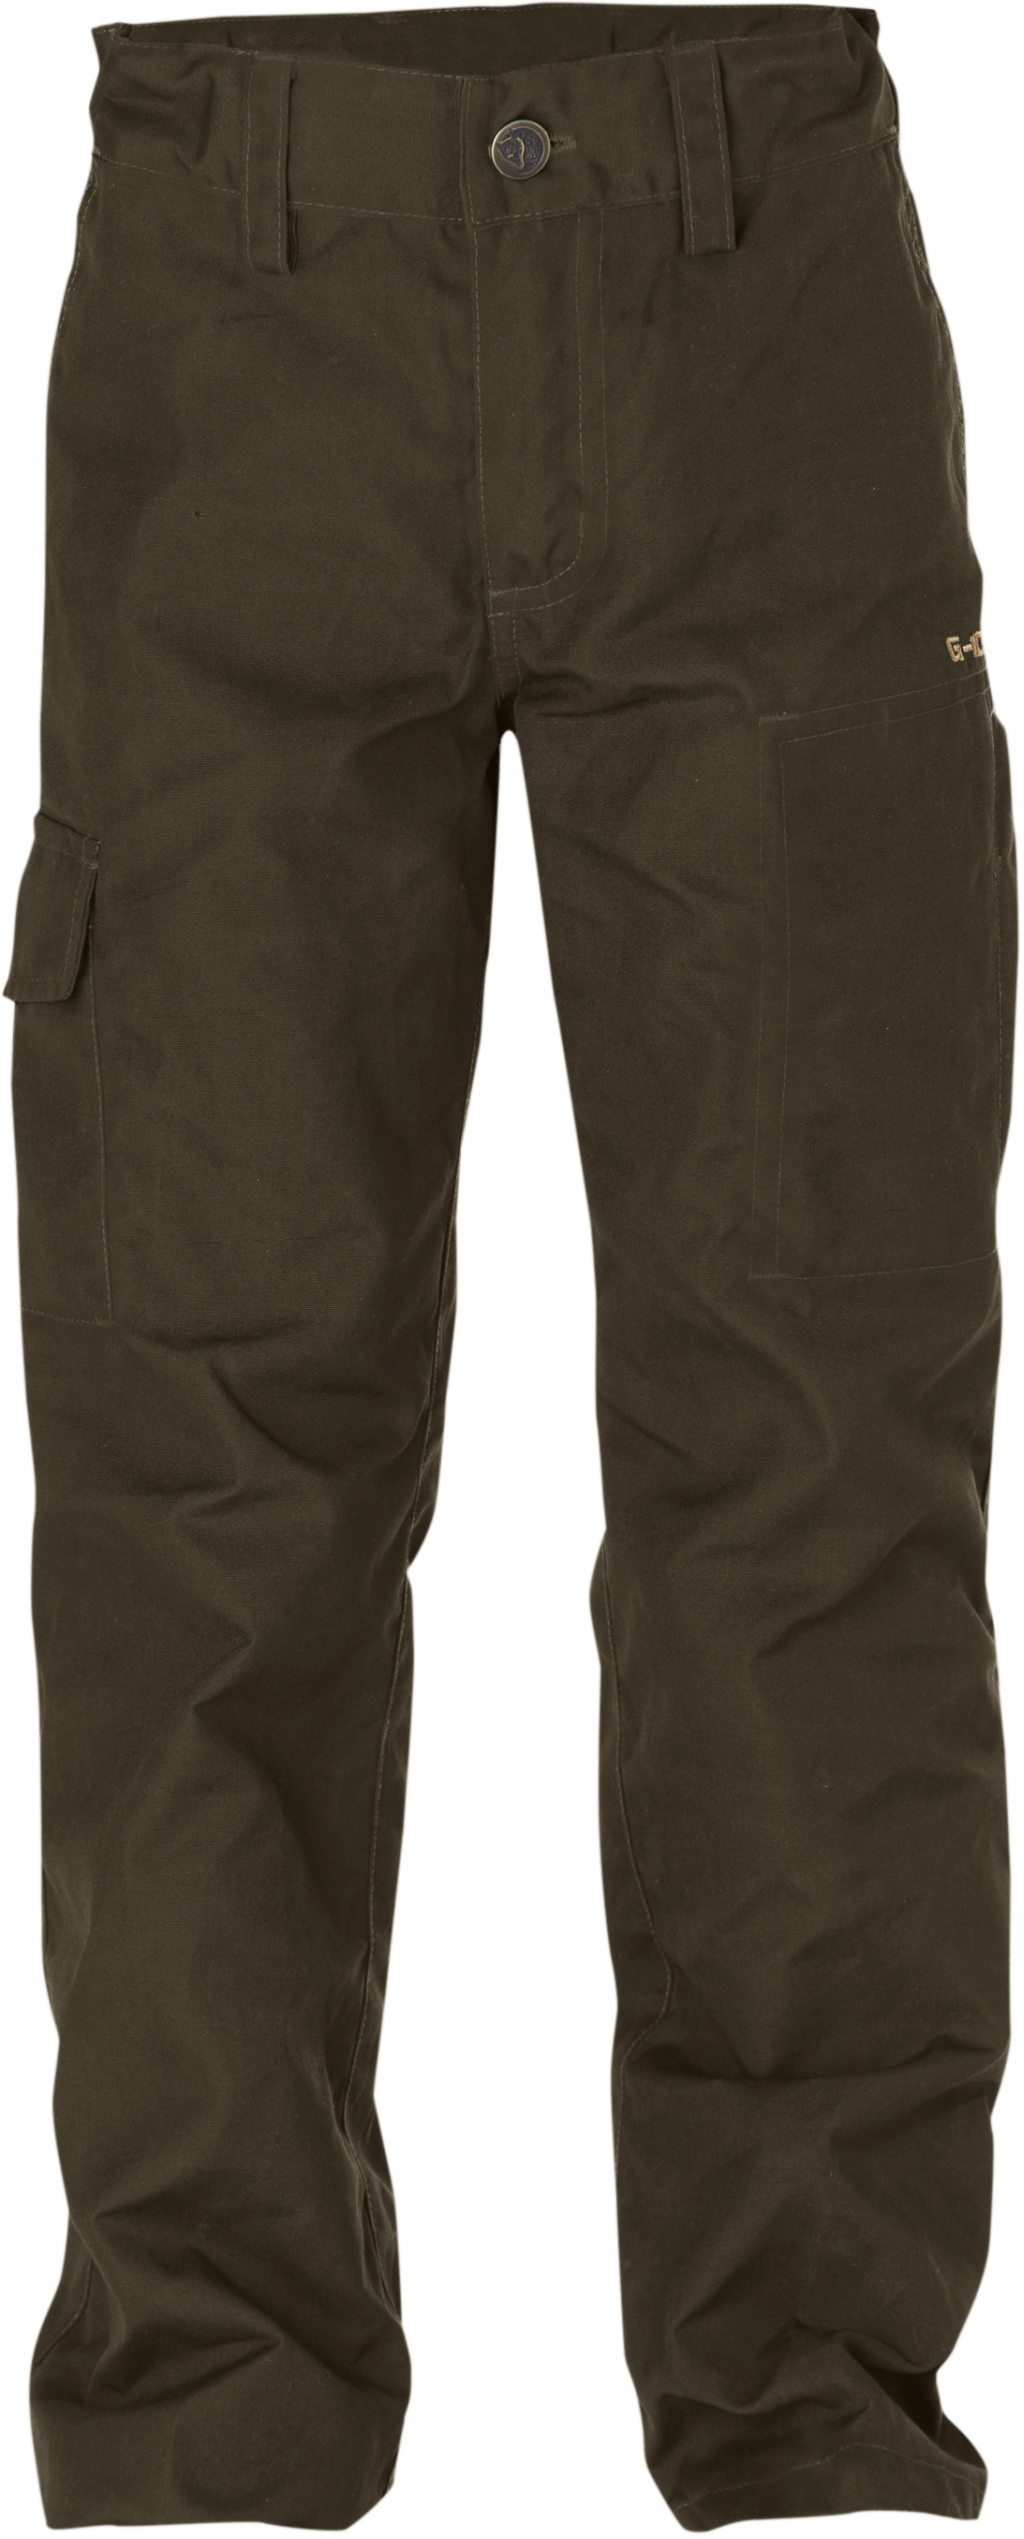 FjallRaven Kids Ovik Trousers Dark Olive-30